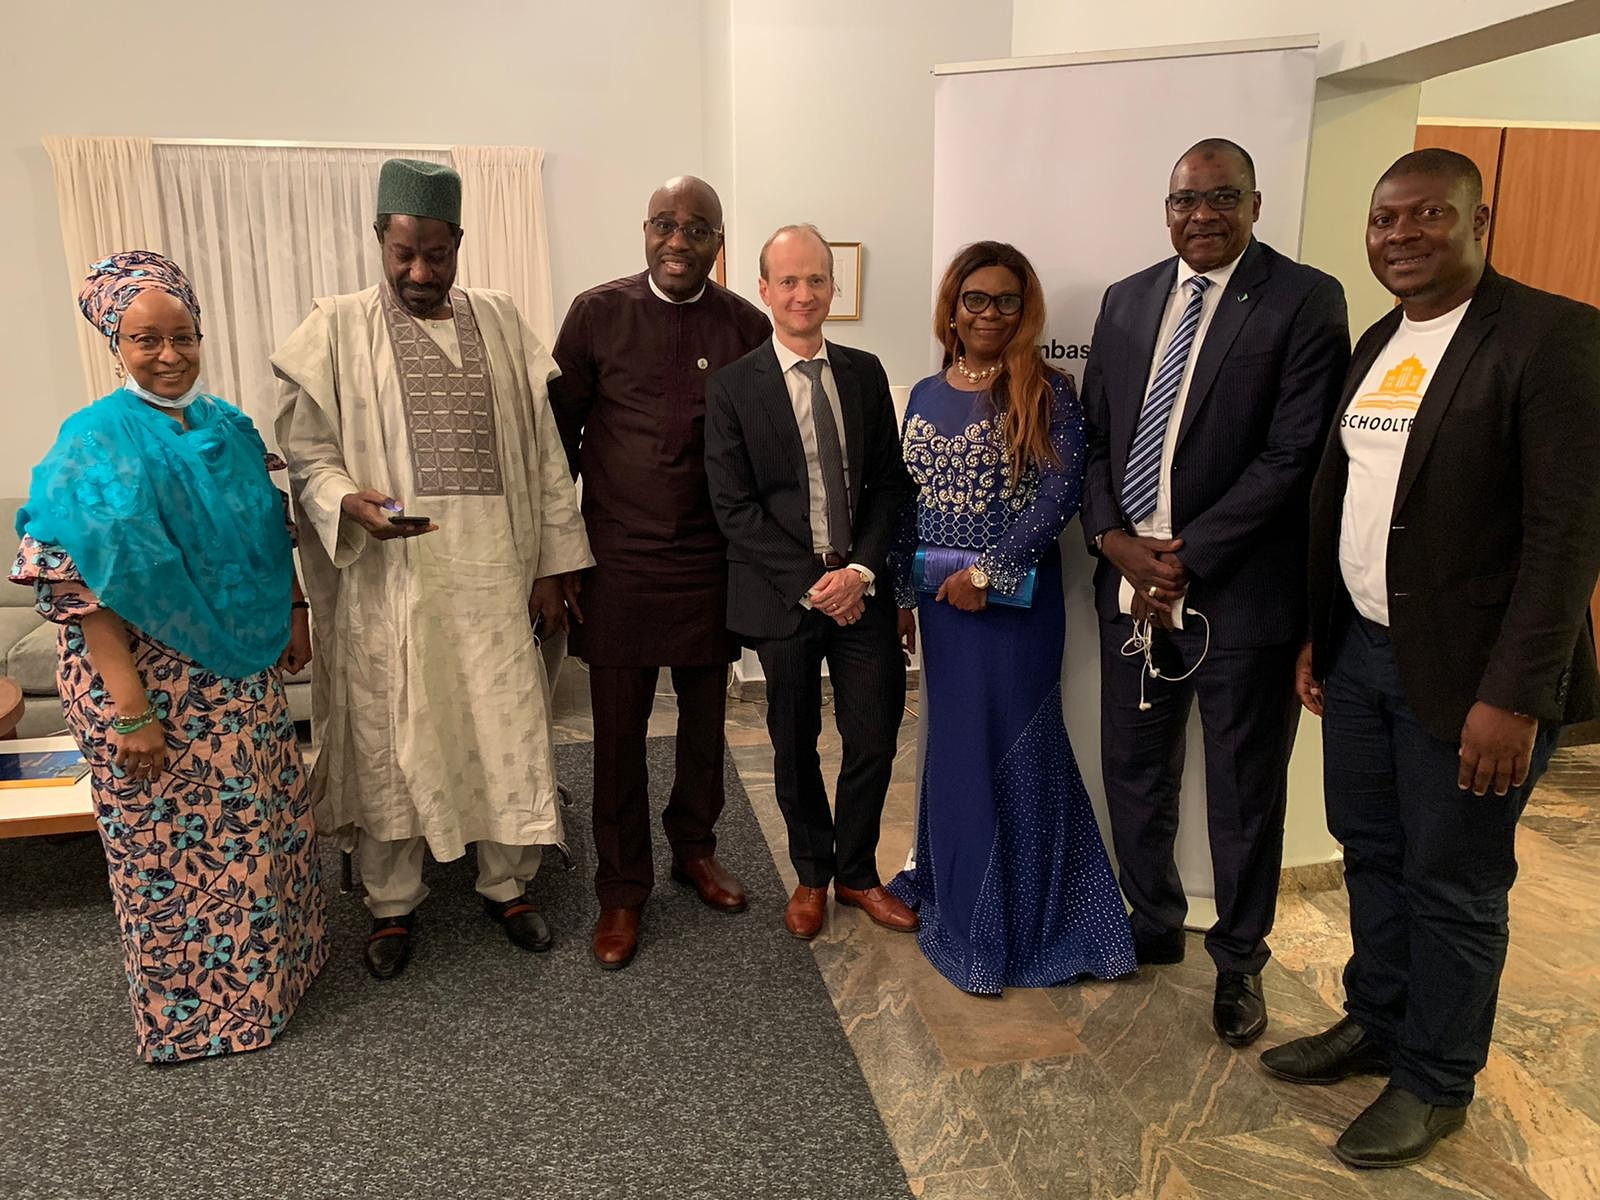 The Presidency National assembly Fidelity Bank Sweden and Bayelsa state government teams up with Schooltry